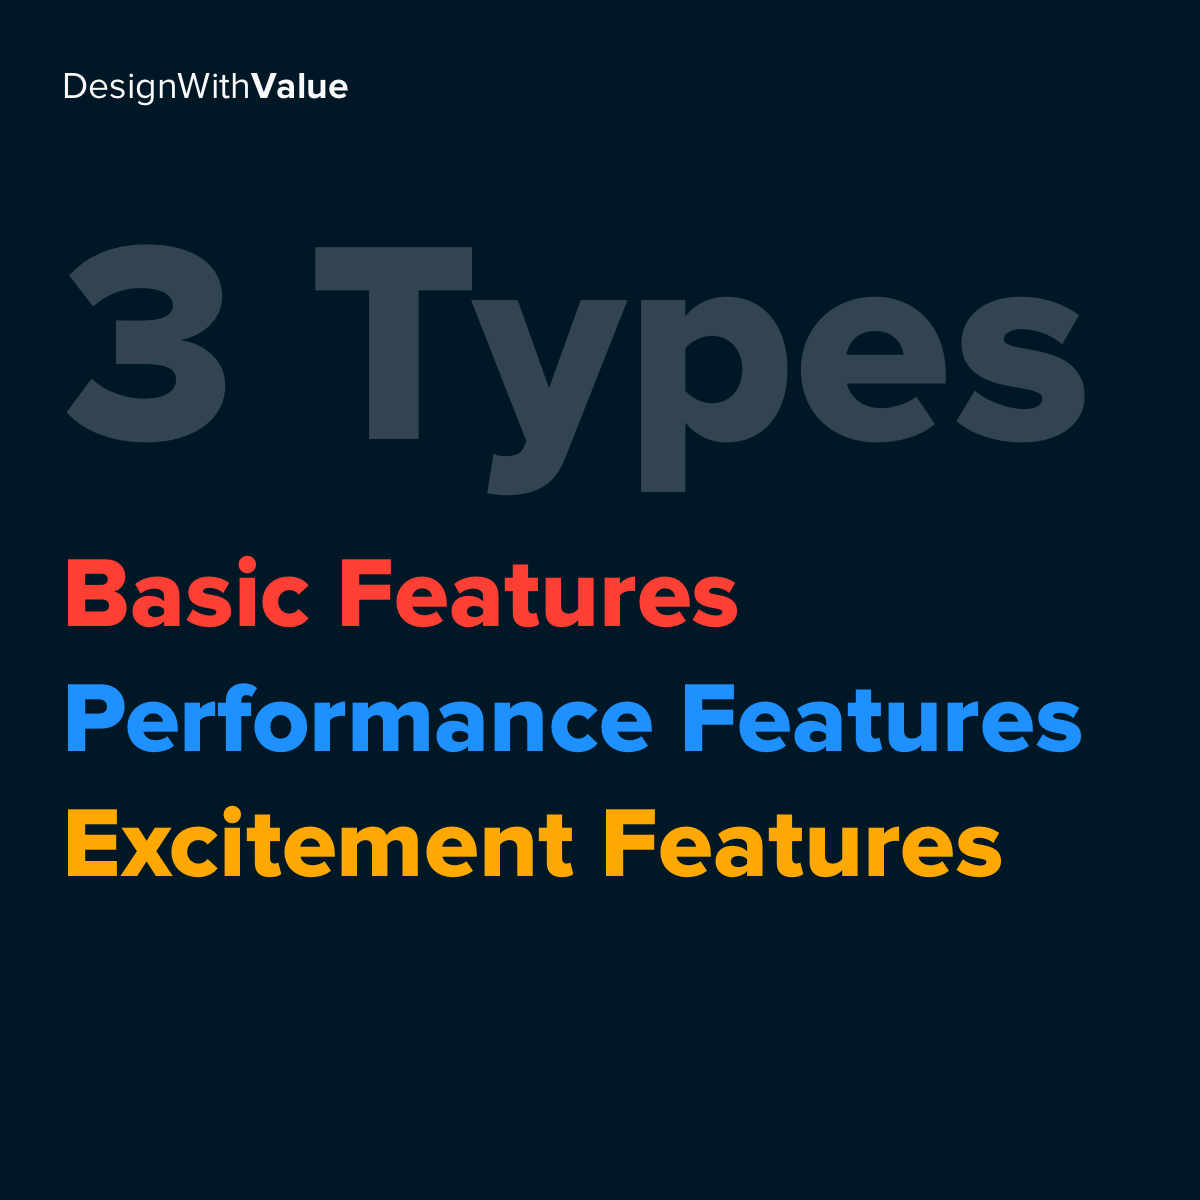 3 types: Basic features, performance features, excitement features.